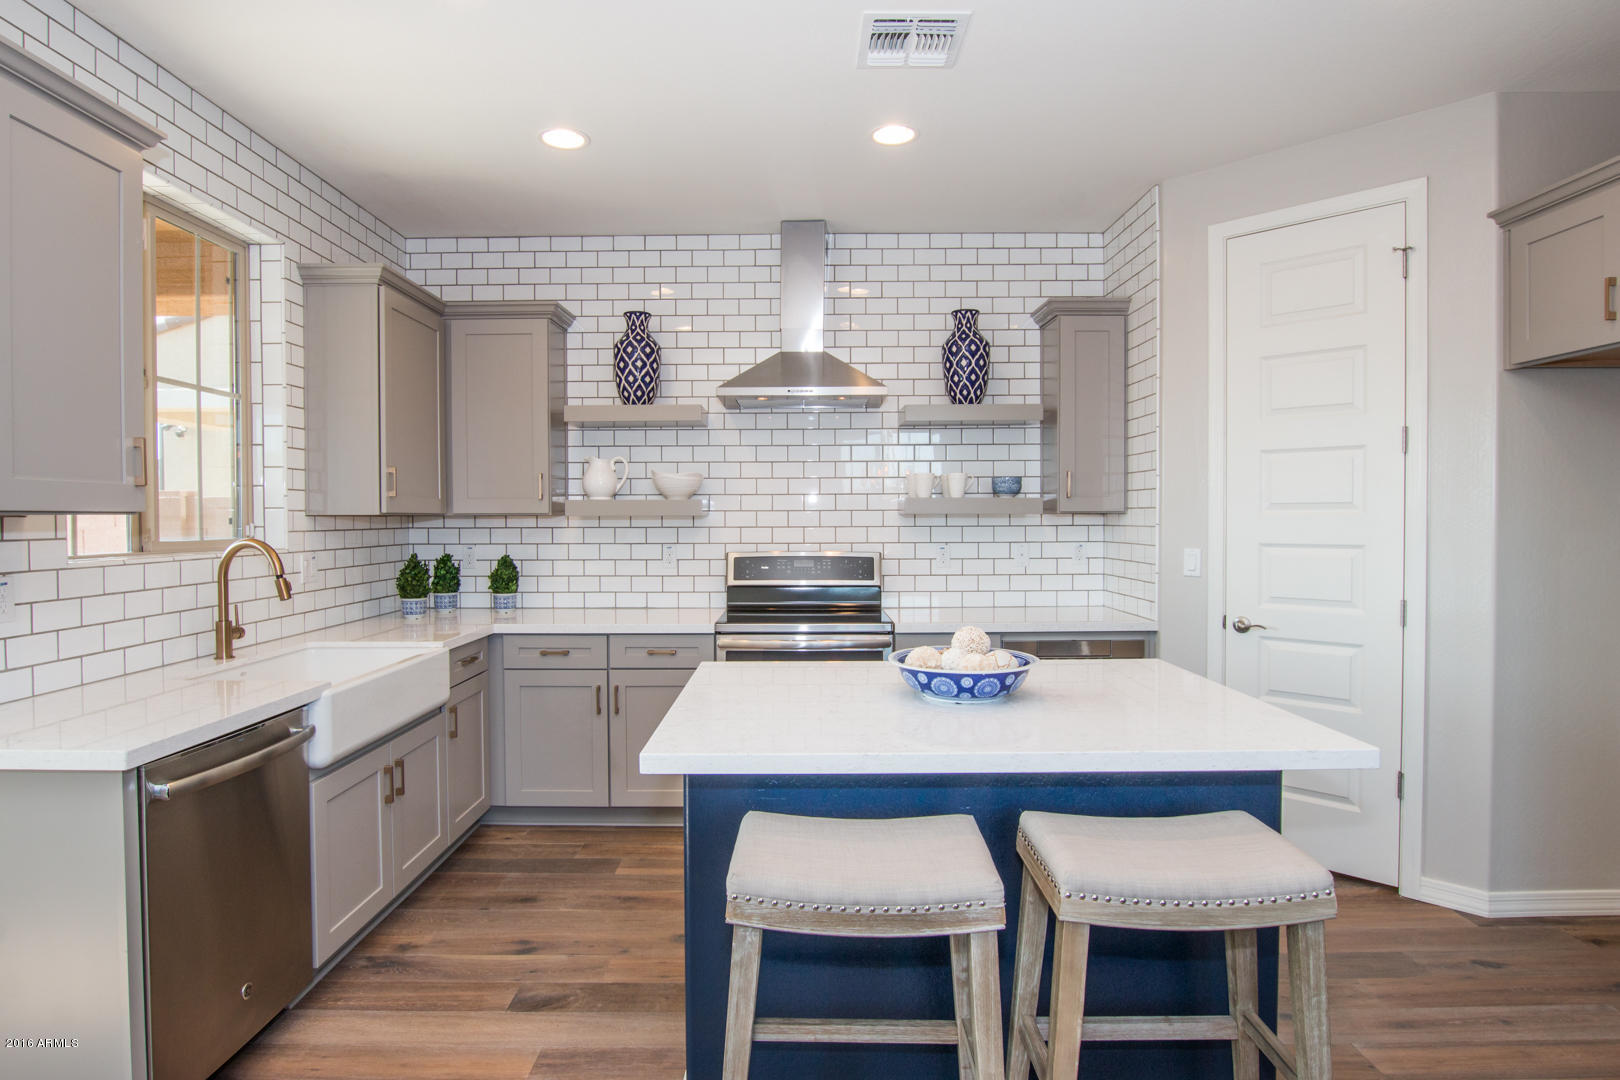 top kitchen trends in 2017 - gray cabinets